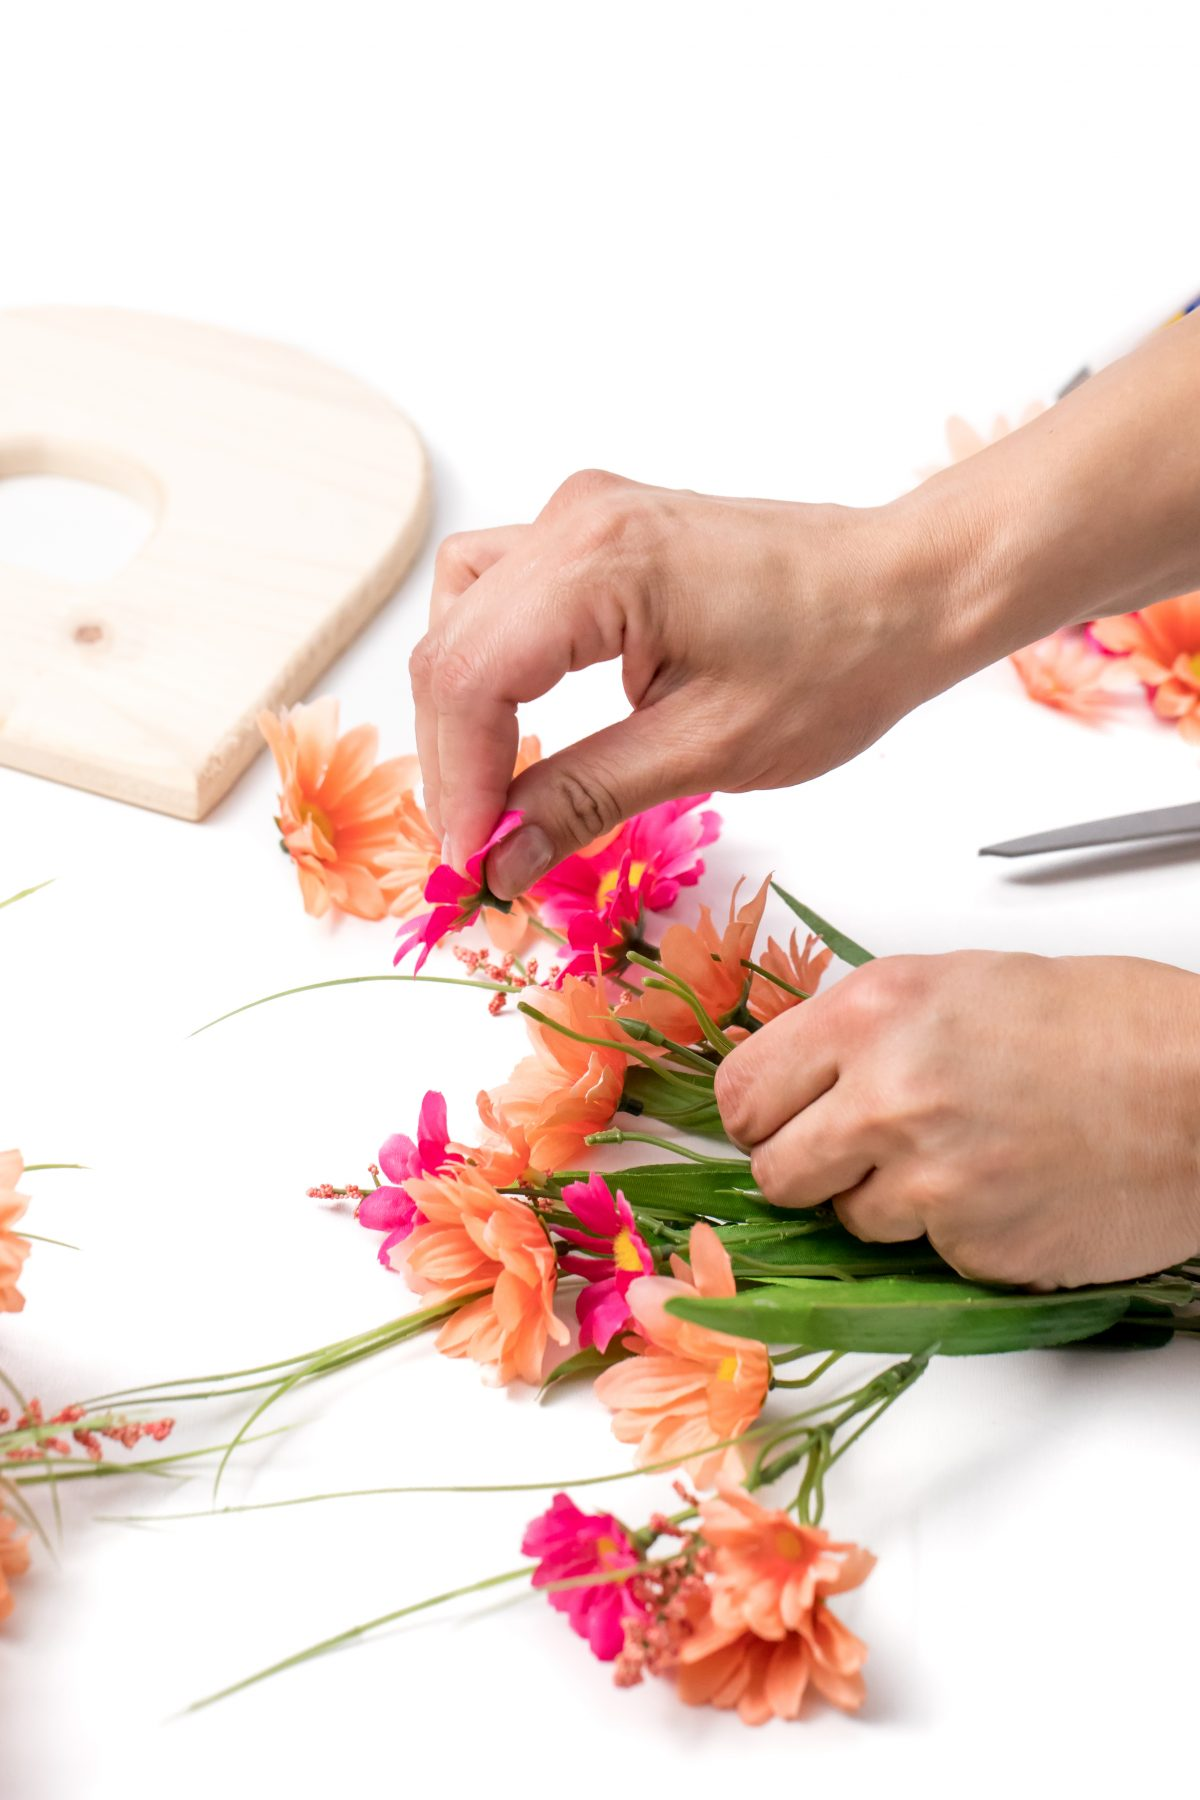 Remove flowers from stems for floral letter craft